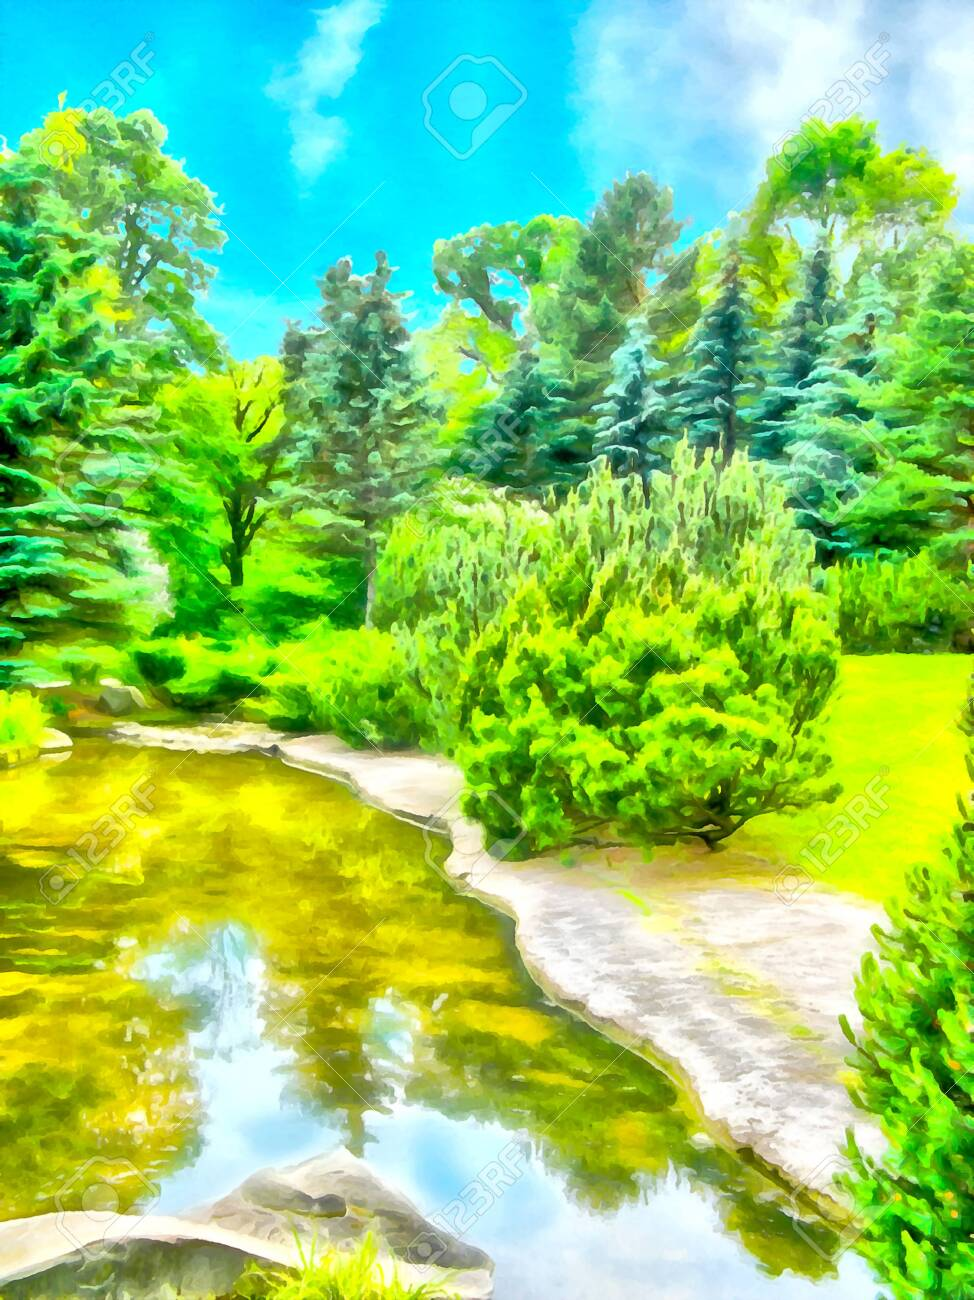 abstract watercolor landscape park with a lake and forest the stock photo picture and royalty free image image 121607056 123rf com